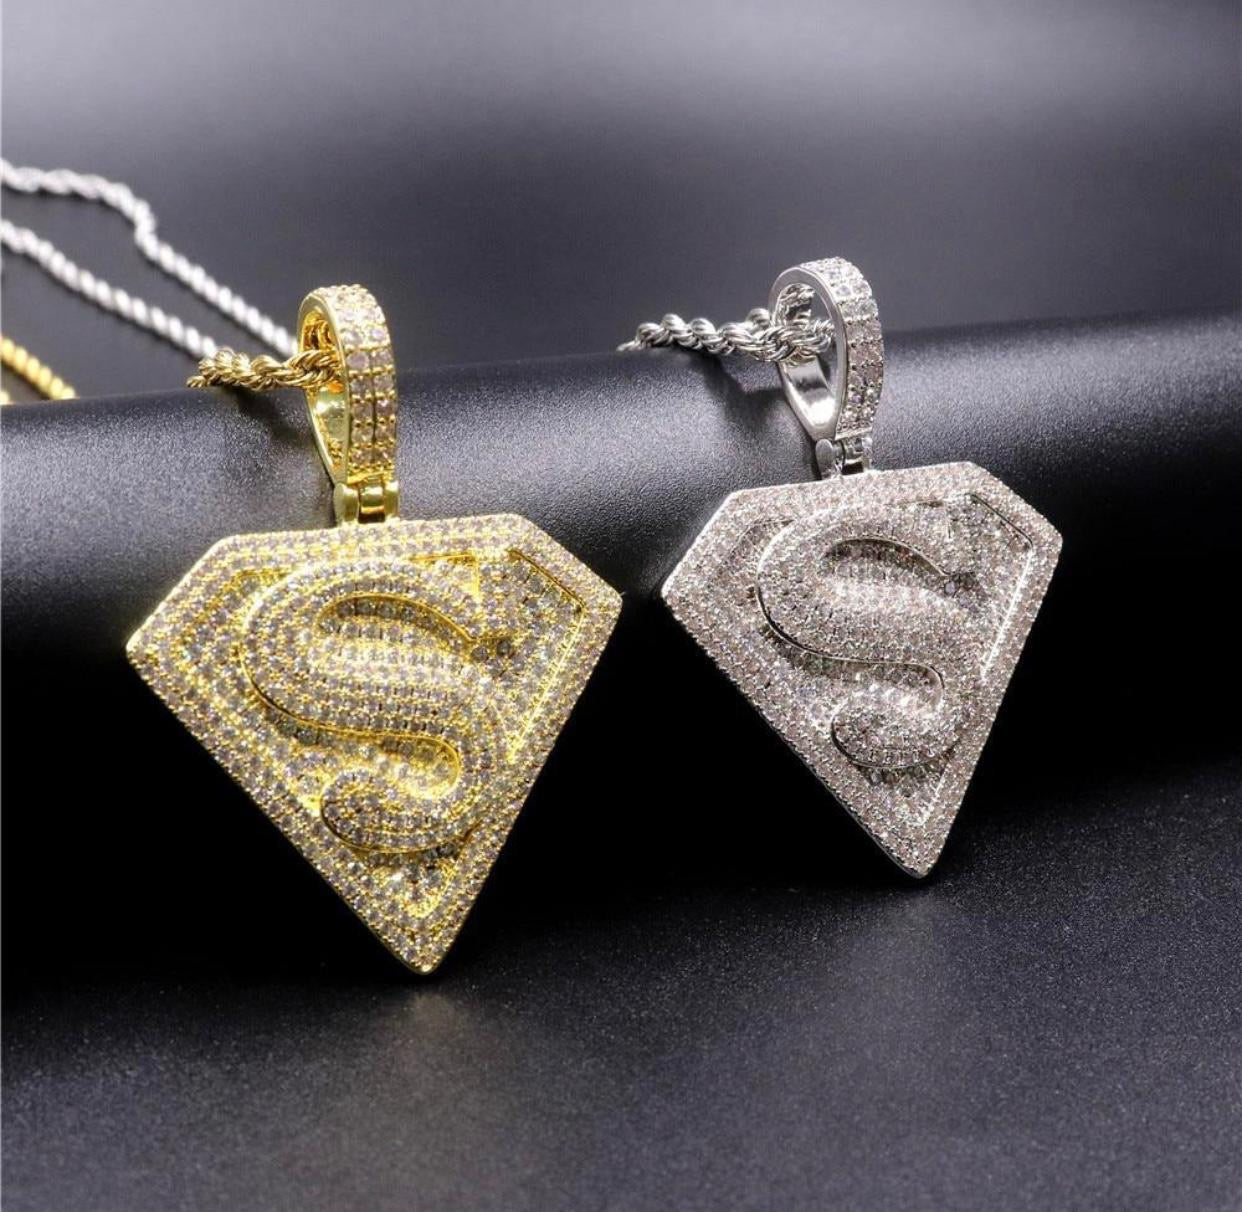 Superman pendants with chain combo set